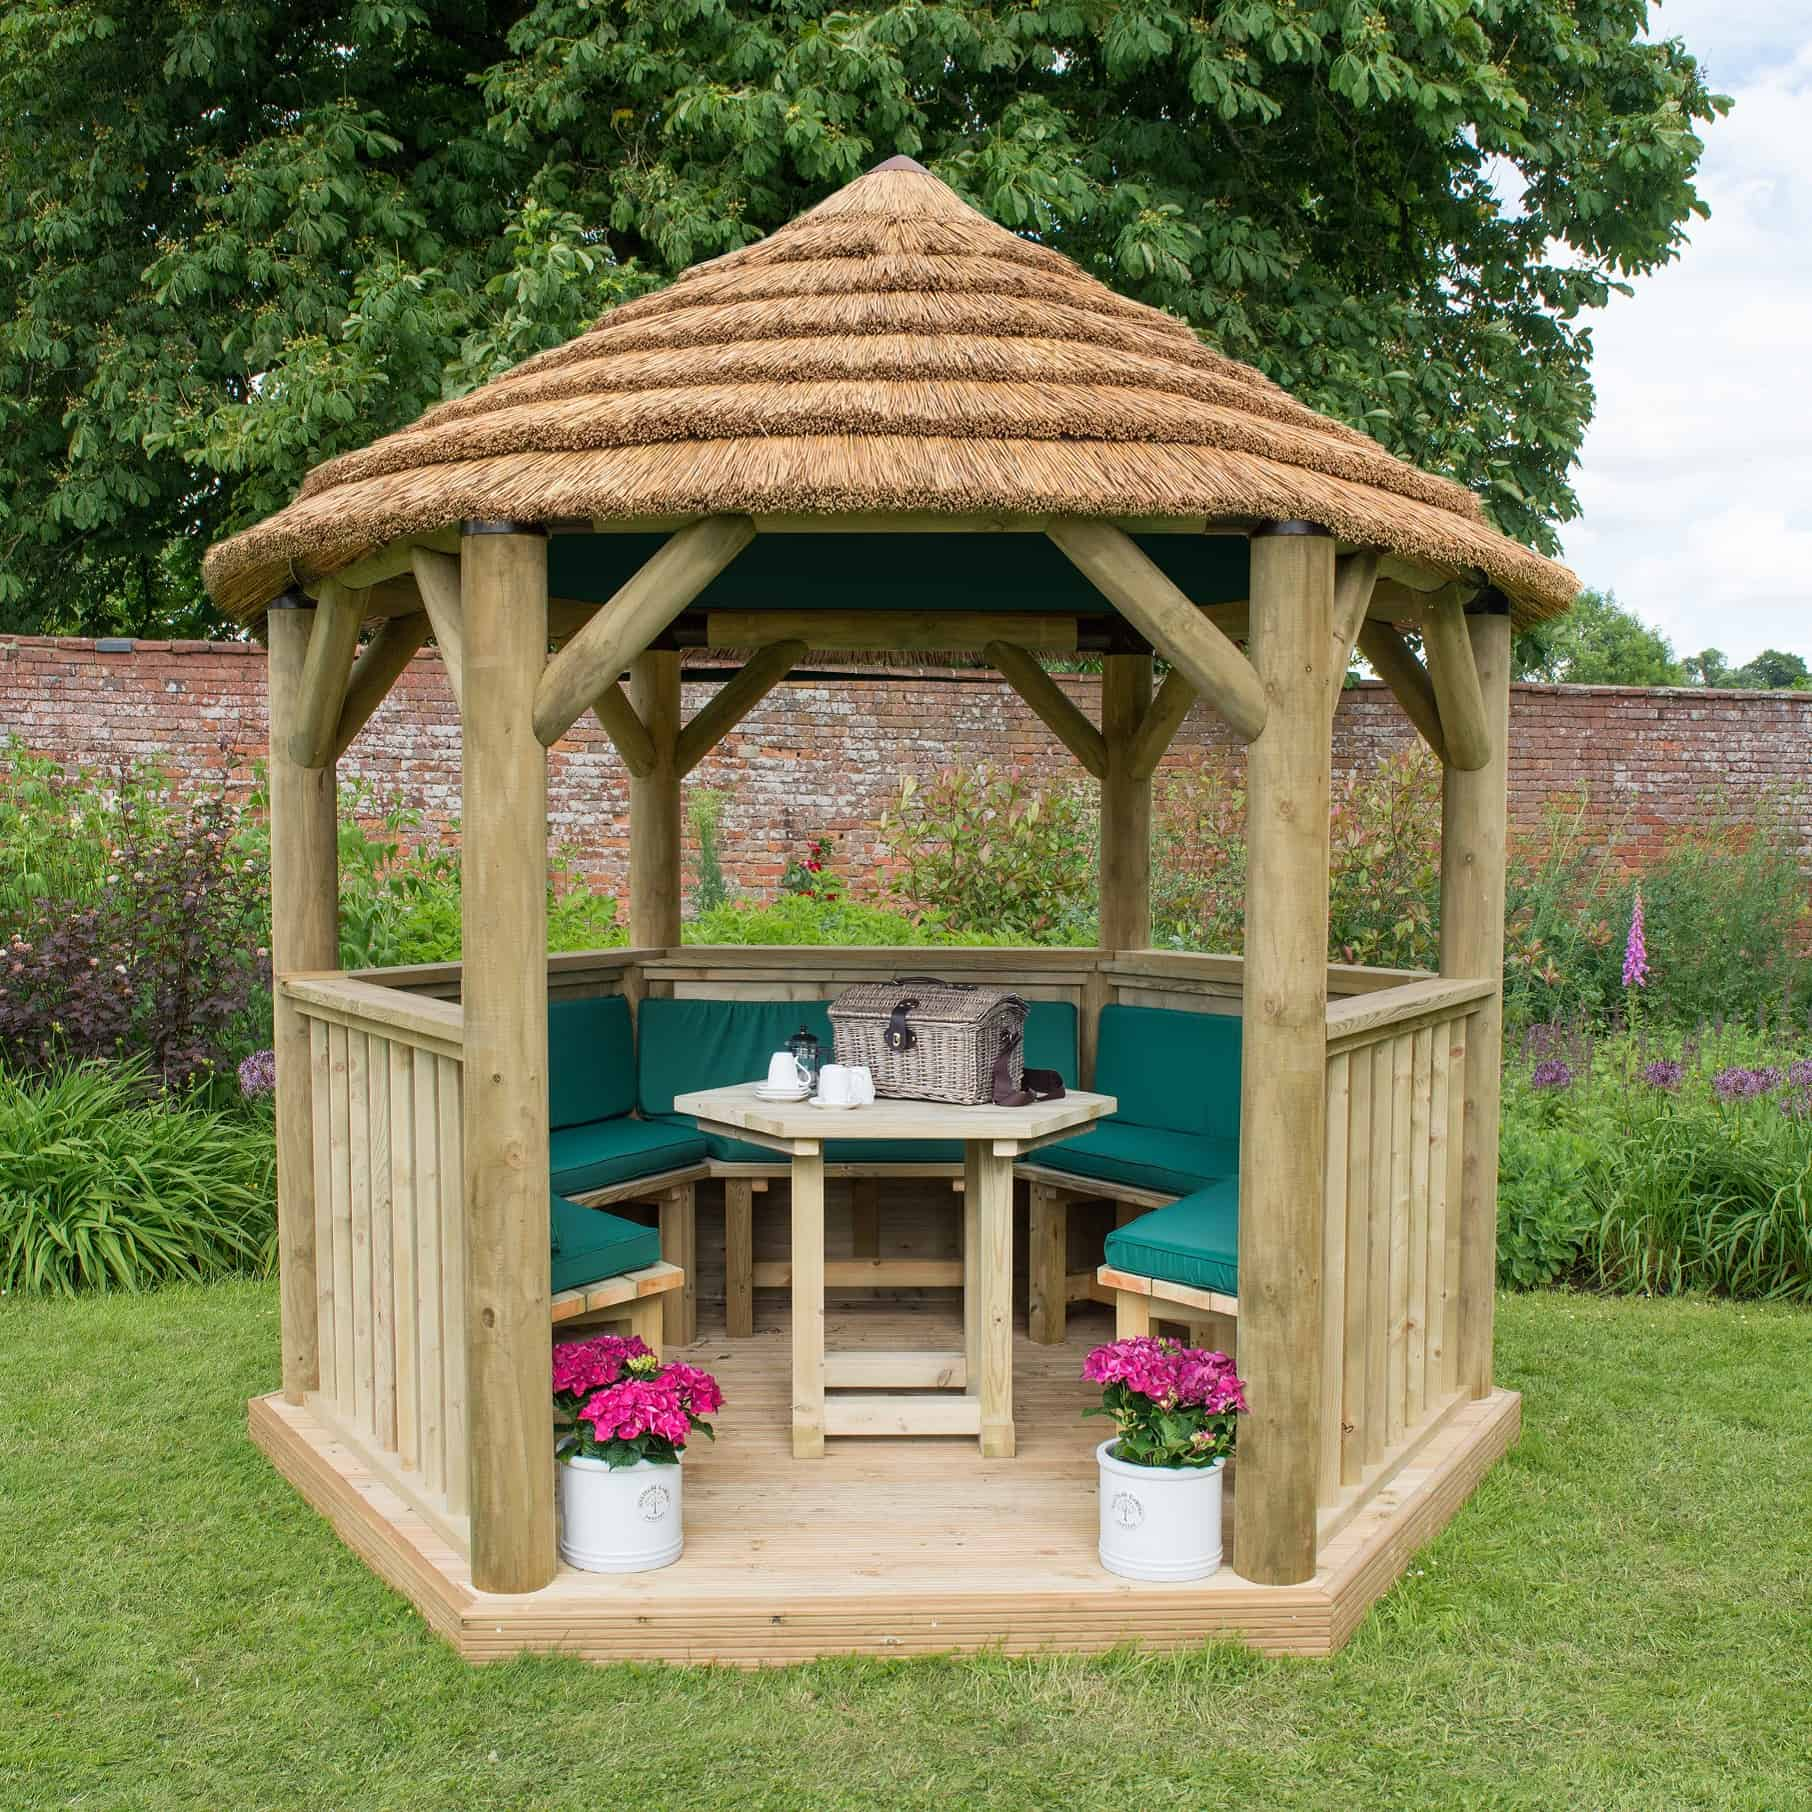 3m Forest Hexagonal Gazebo Thatched Roof